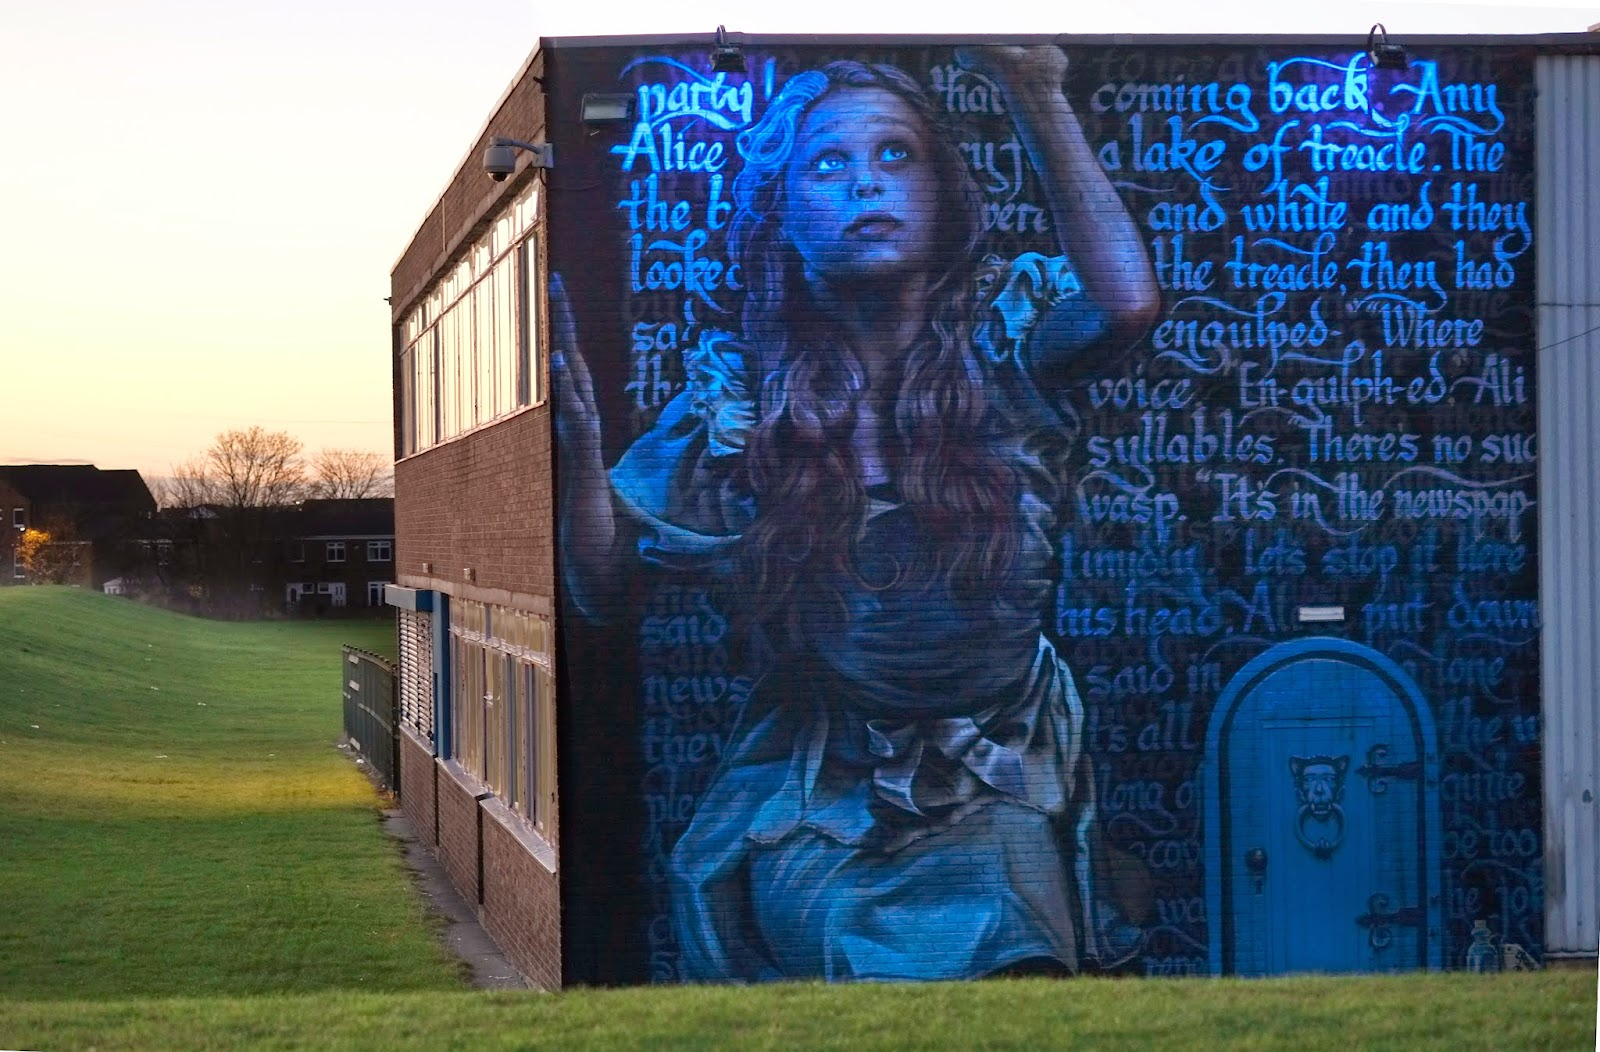 Irony and frank styles paint alice in wonderland a new mural in irony just finished working a collaboration with frank styles who added the calligraphy to the piece amipublicfo Images